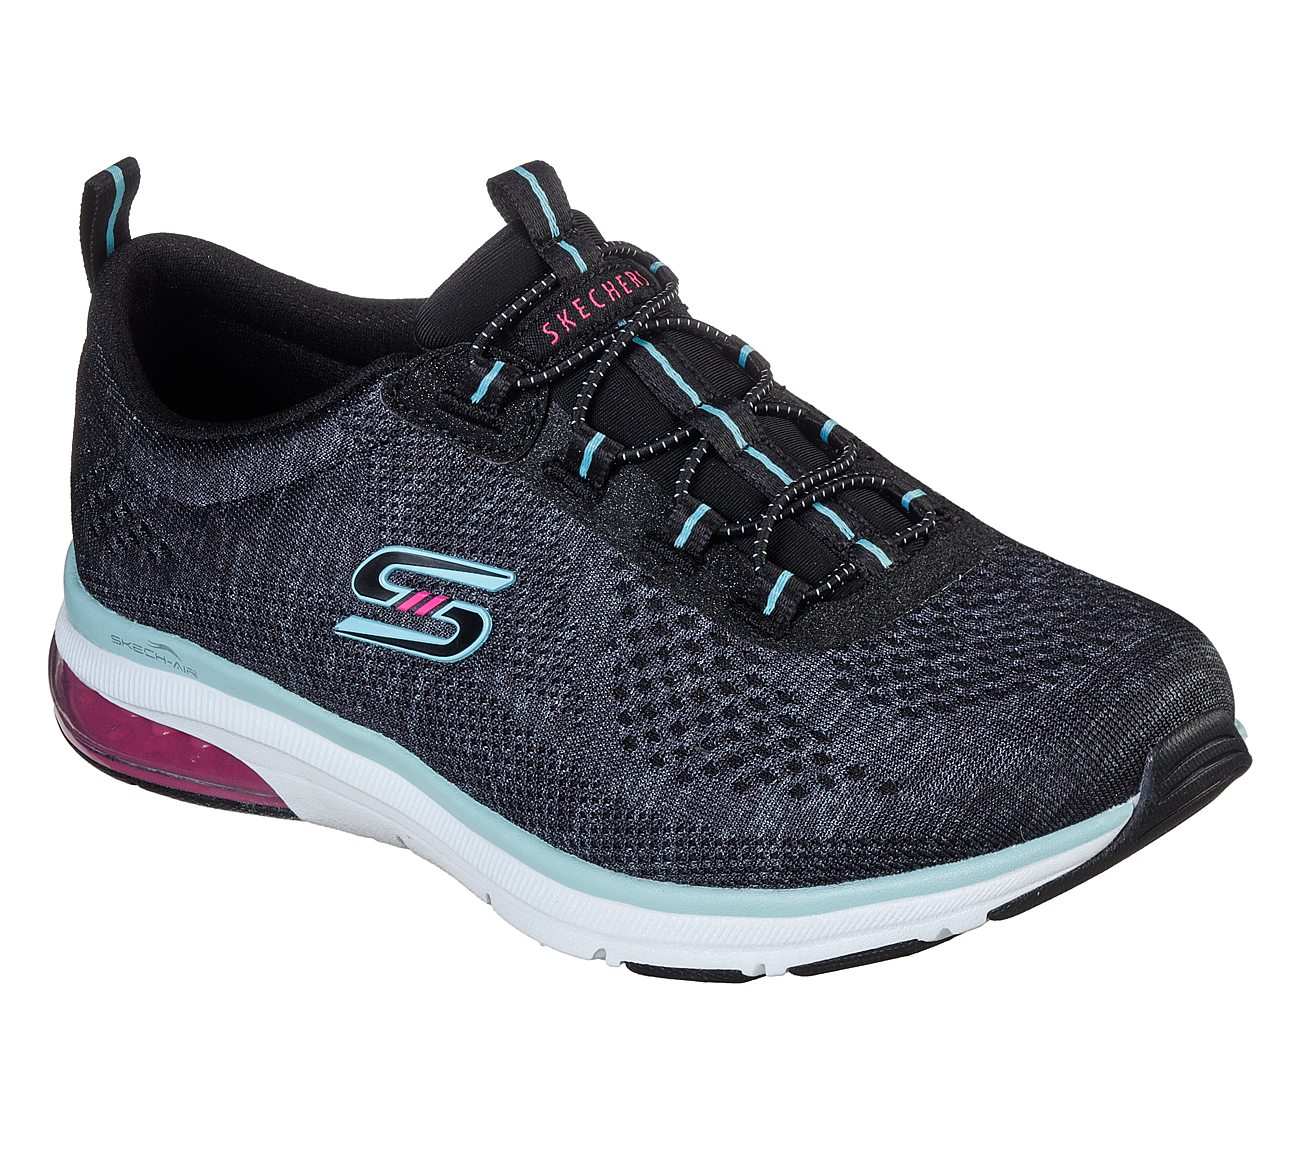 Cordero Velas Implacable  Buy SKECHERS Relaxed Fit: Skech-Air Edge - Brite Times Sport Active Shoes